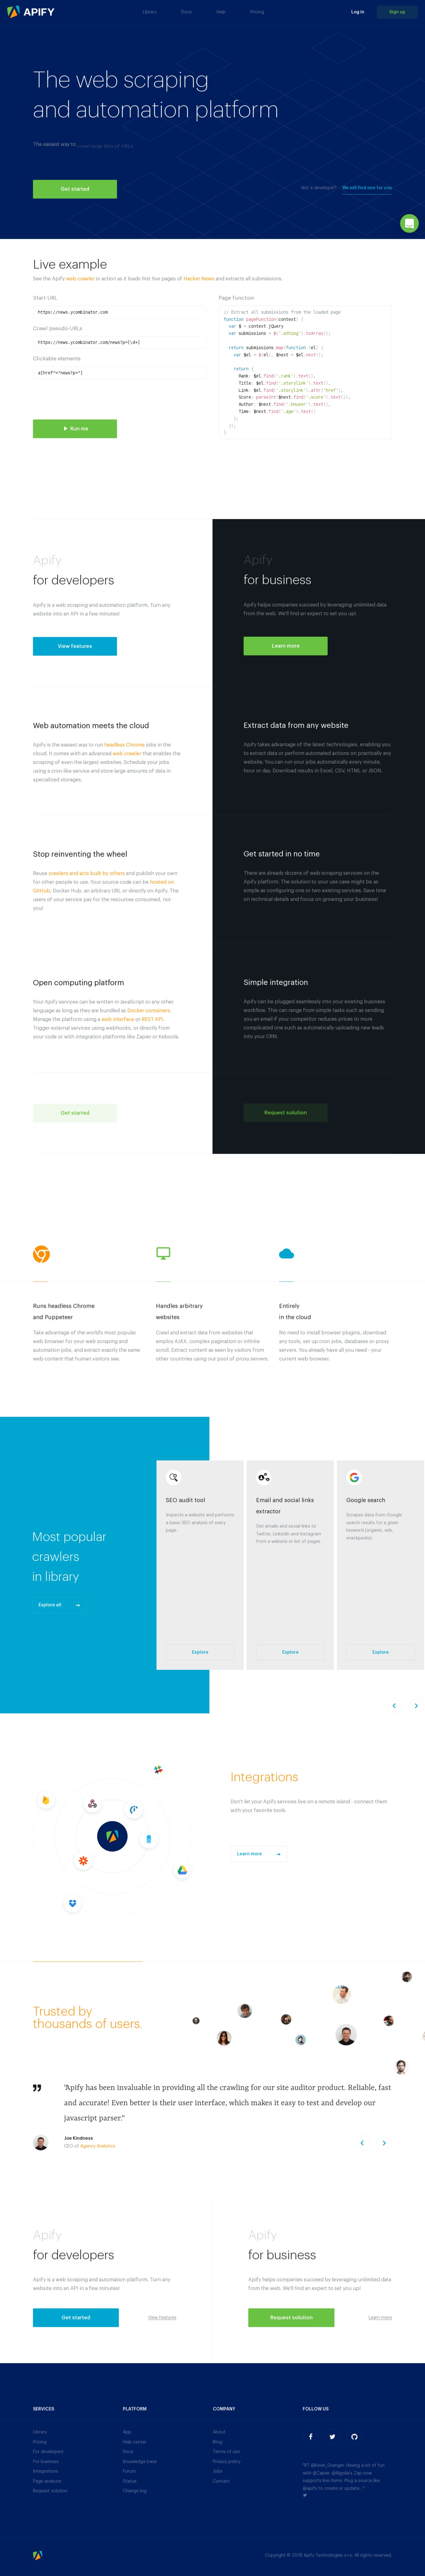 Apify - The | Land-book - the finest hand-picked website